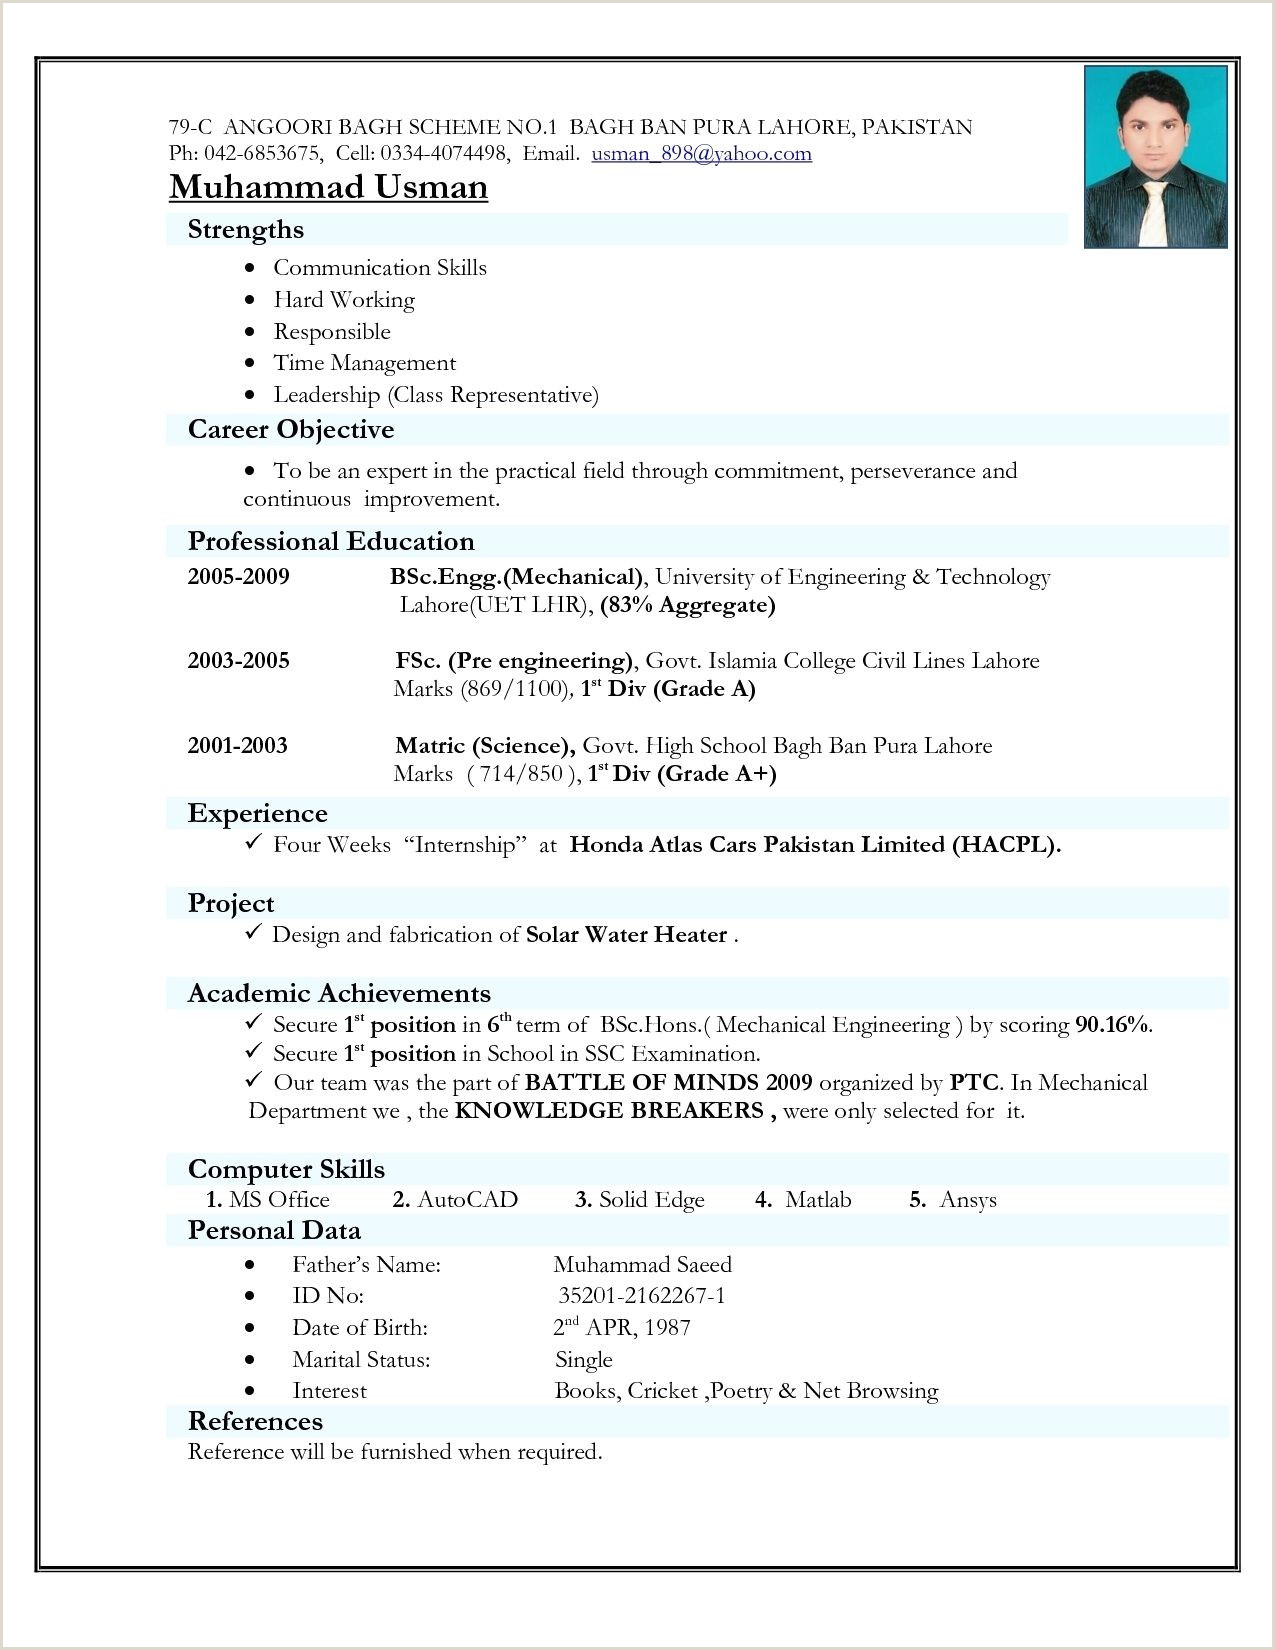 Fresher Resume Latest format Resume format India D